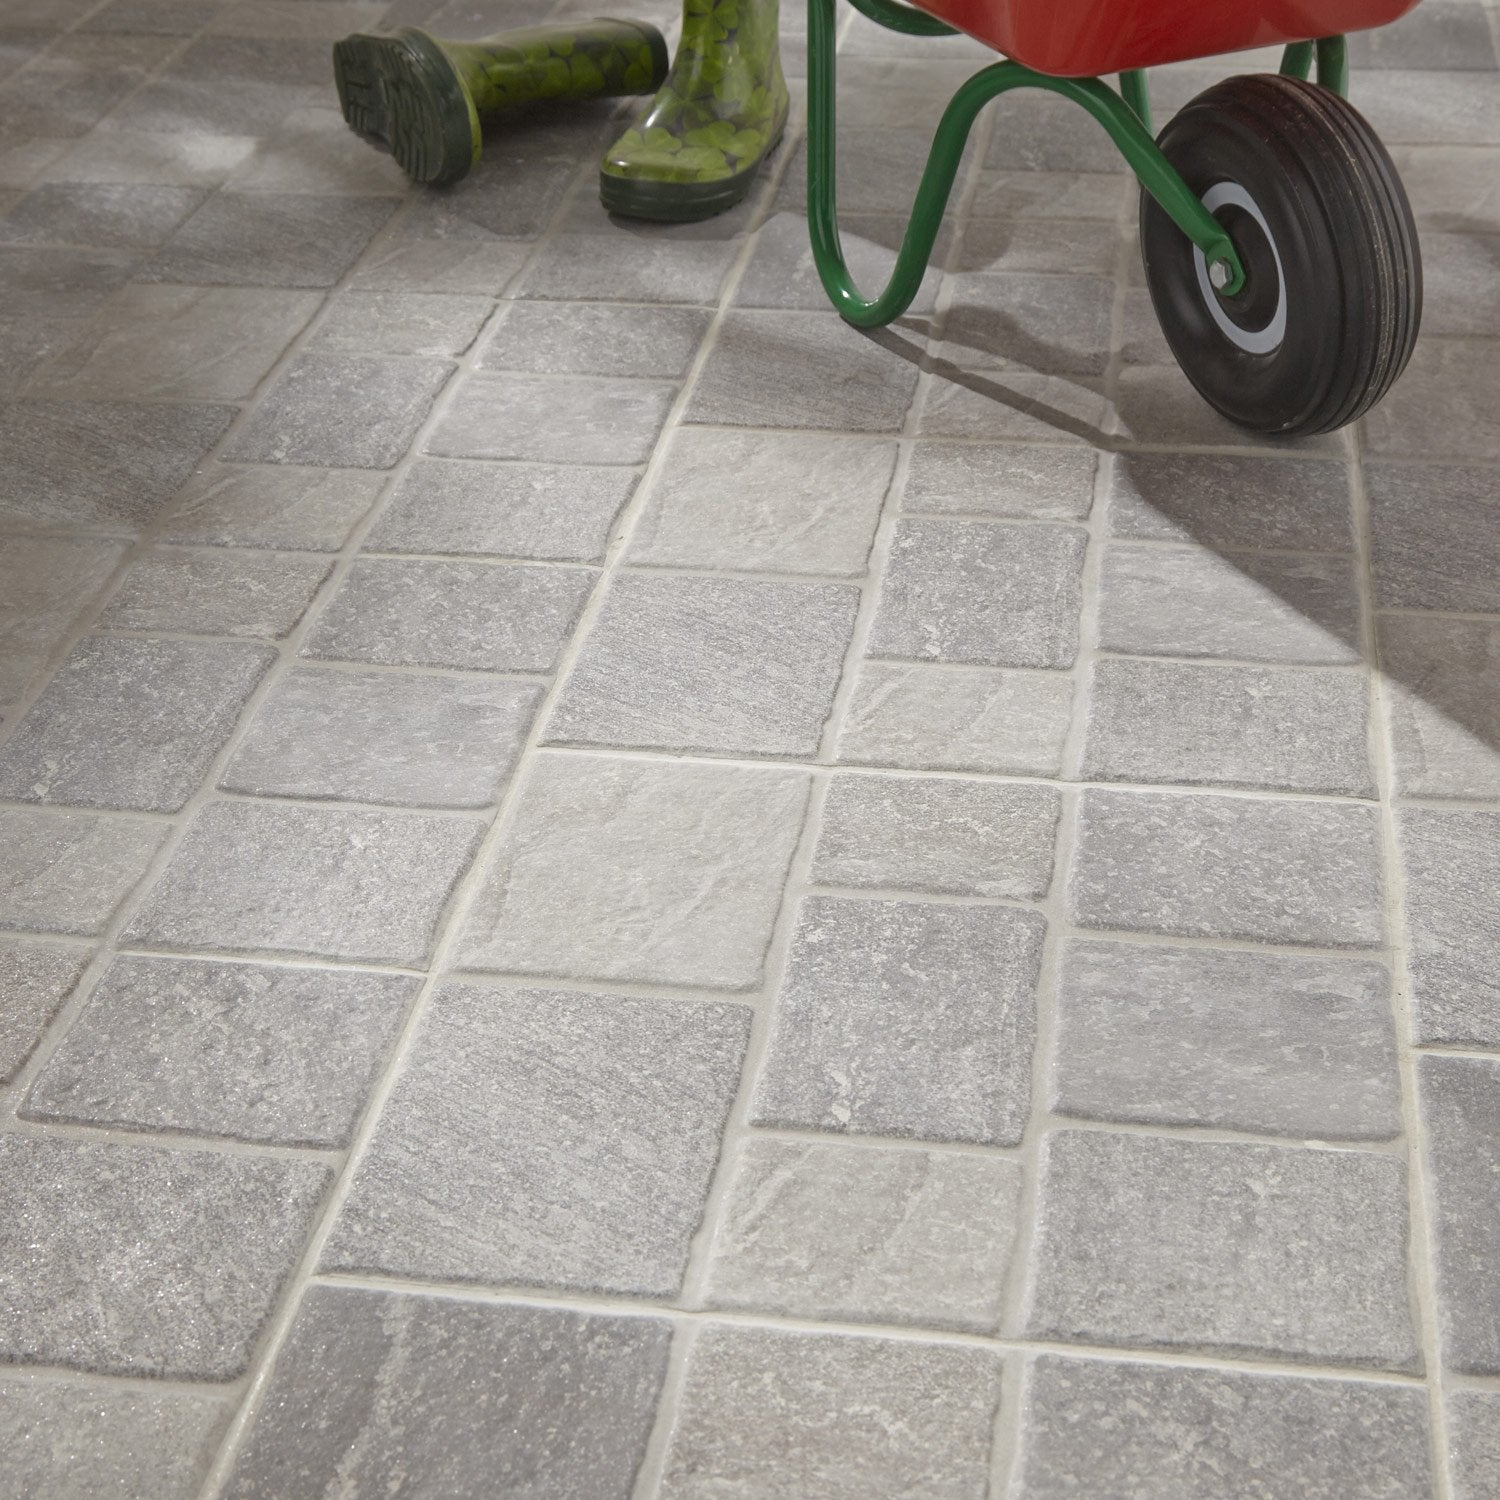 Carrelage sol gris effet pierre sanpietrini x cm for Carrelage sol cuisine point p